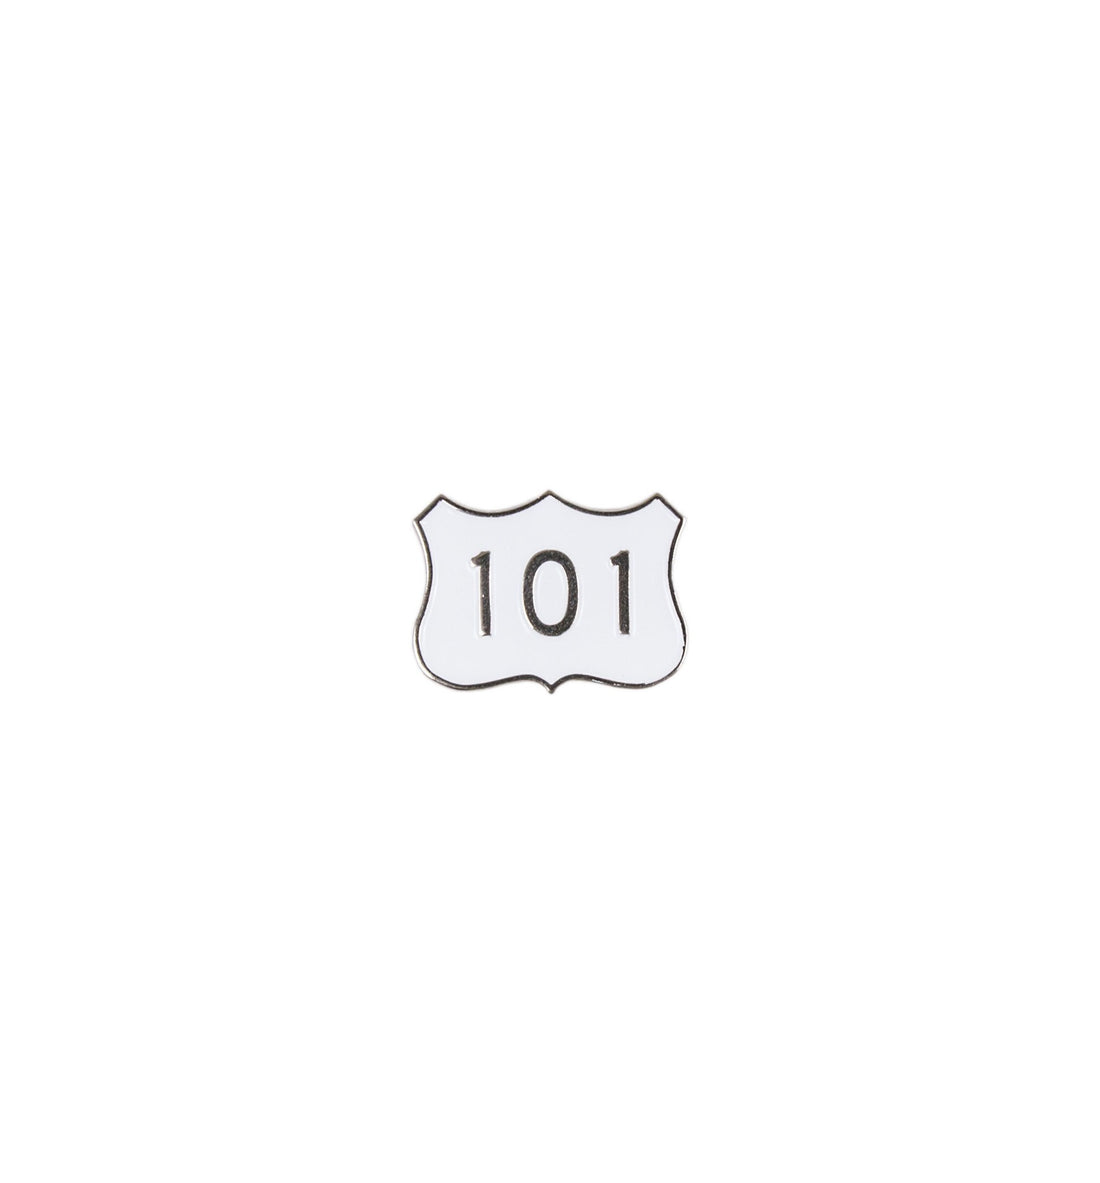 HWY 101 Enamel Pin - Stickers/Pins/Patches - Iron and Resin